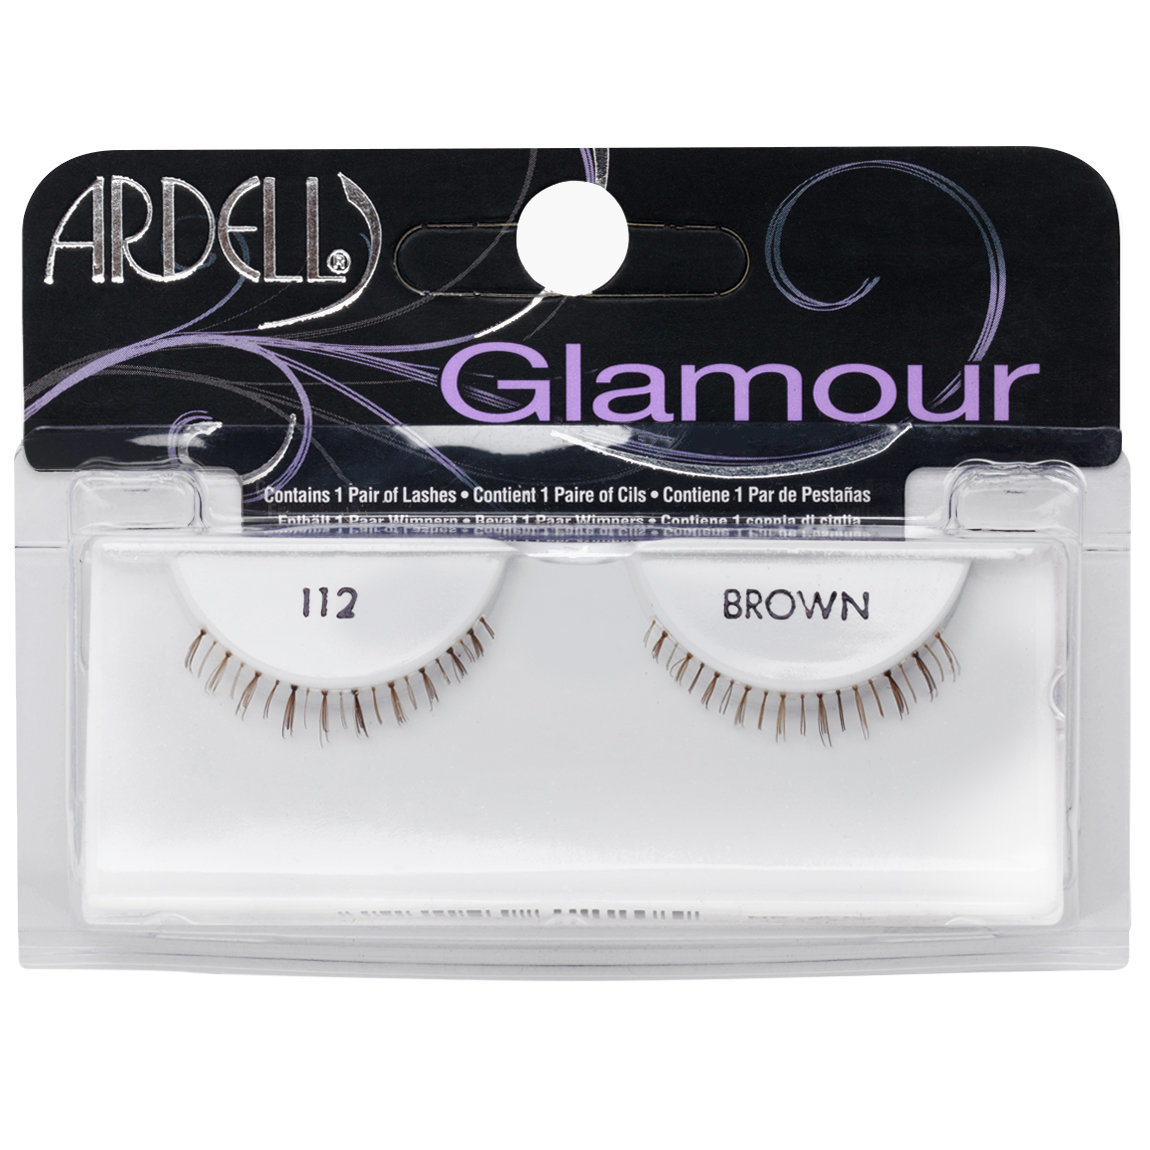 Ardell Glamour Lashes 112 Brown